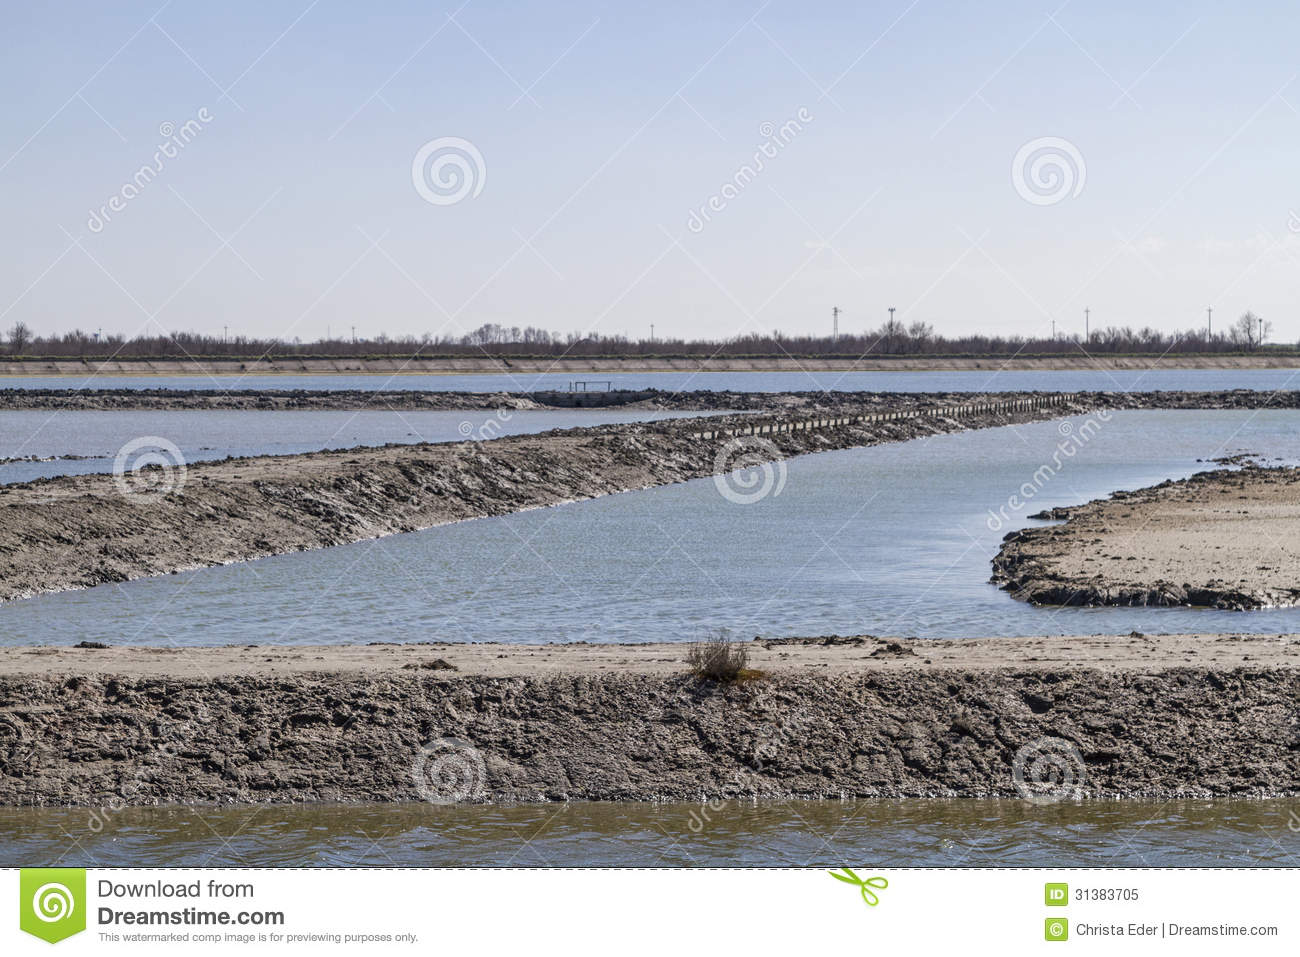 Land reclamation royalty free stock photo image 31383705 for Soil reclamation